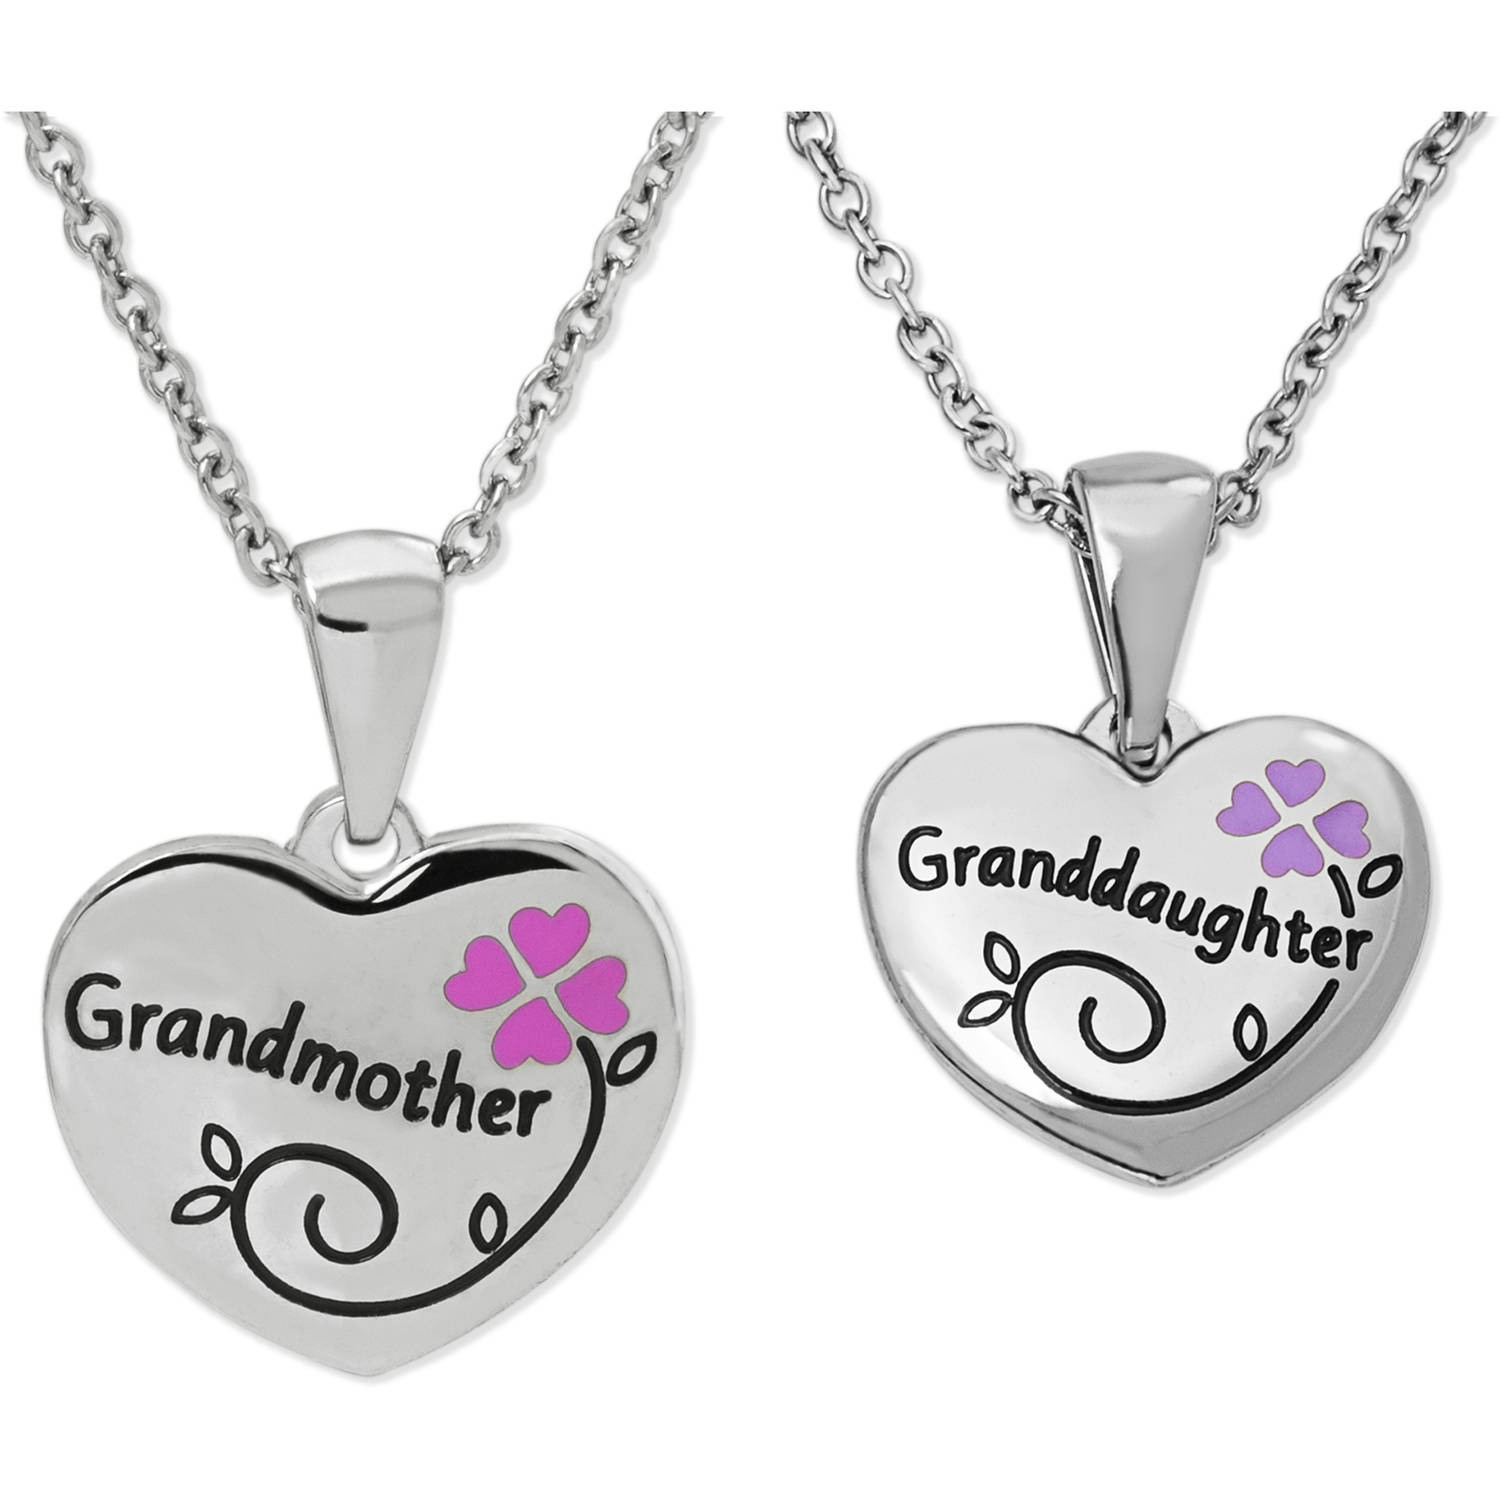 Connections from Hallmark Girls' Stainless Steel Grandmother/Granddaughter Breakaway Pendant Set